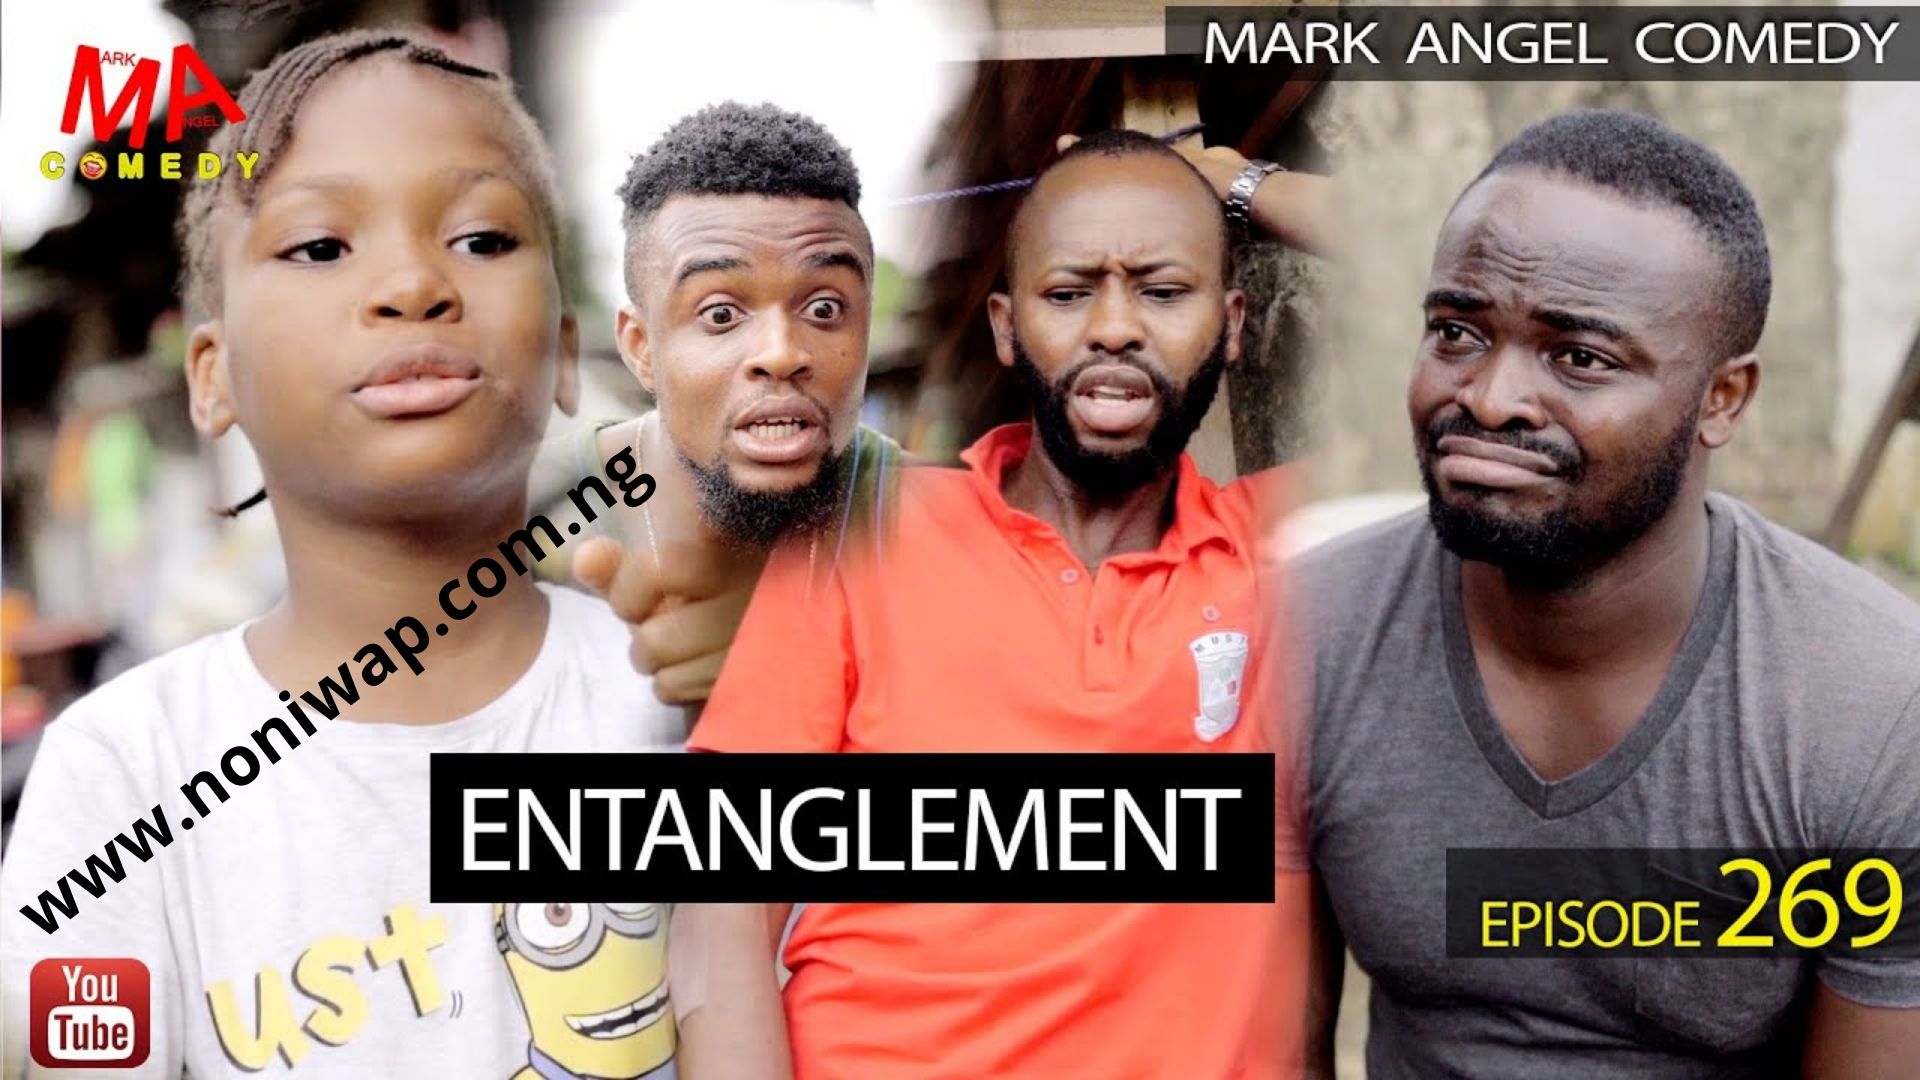 DOWNLOAD: ENTANGLEMENT (Mark Angel Comedy) (Episode 269)